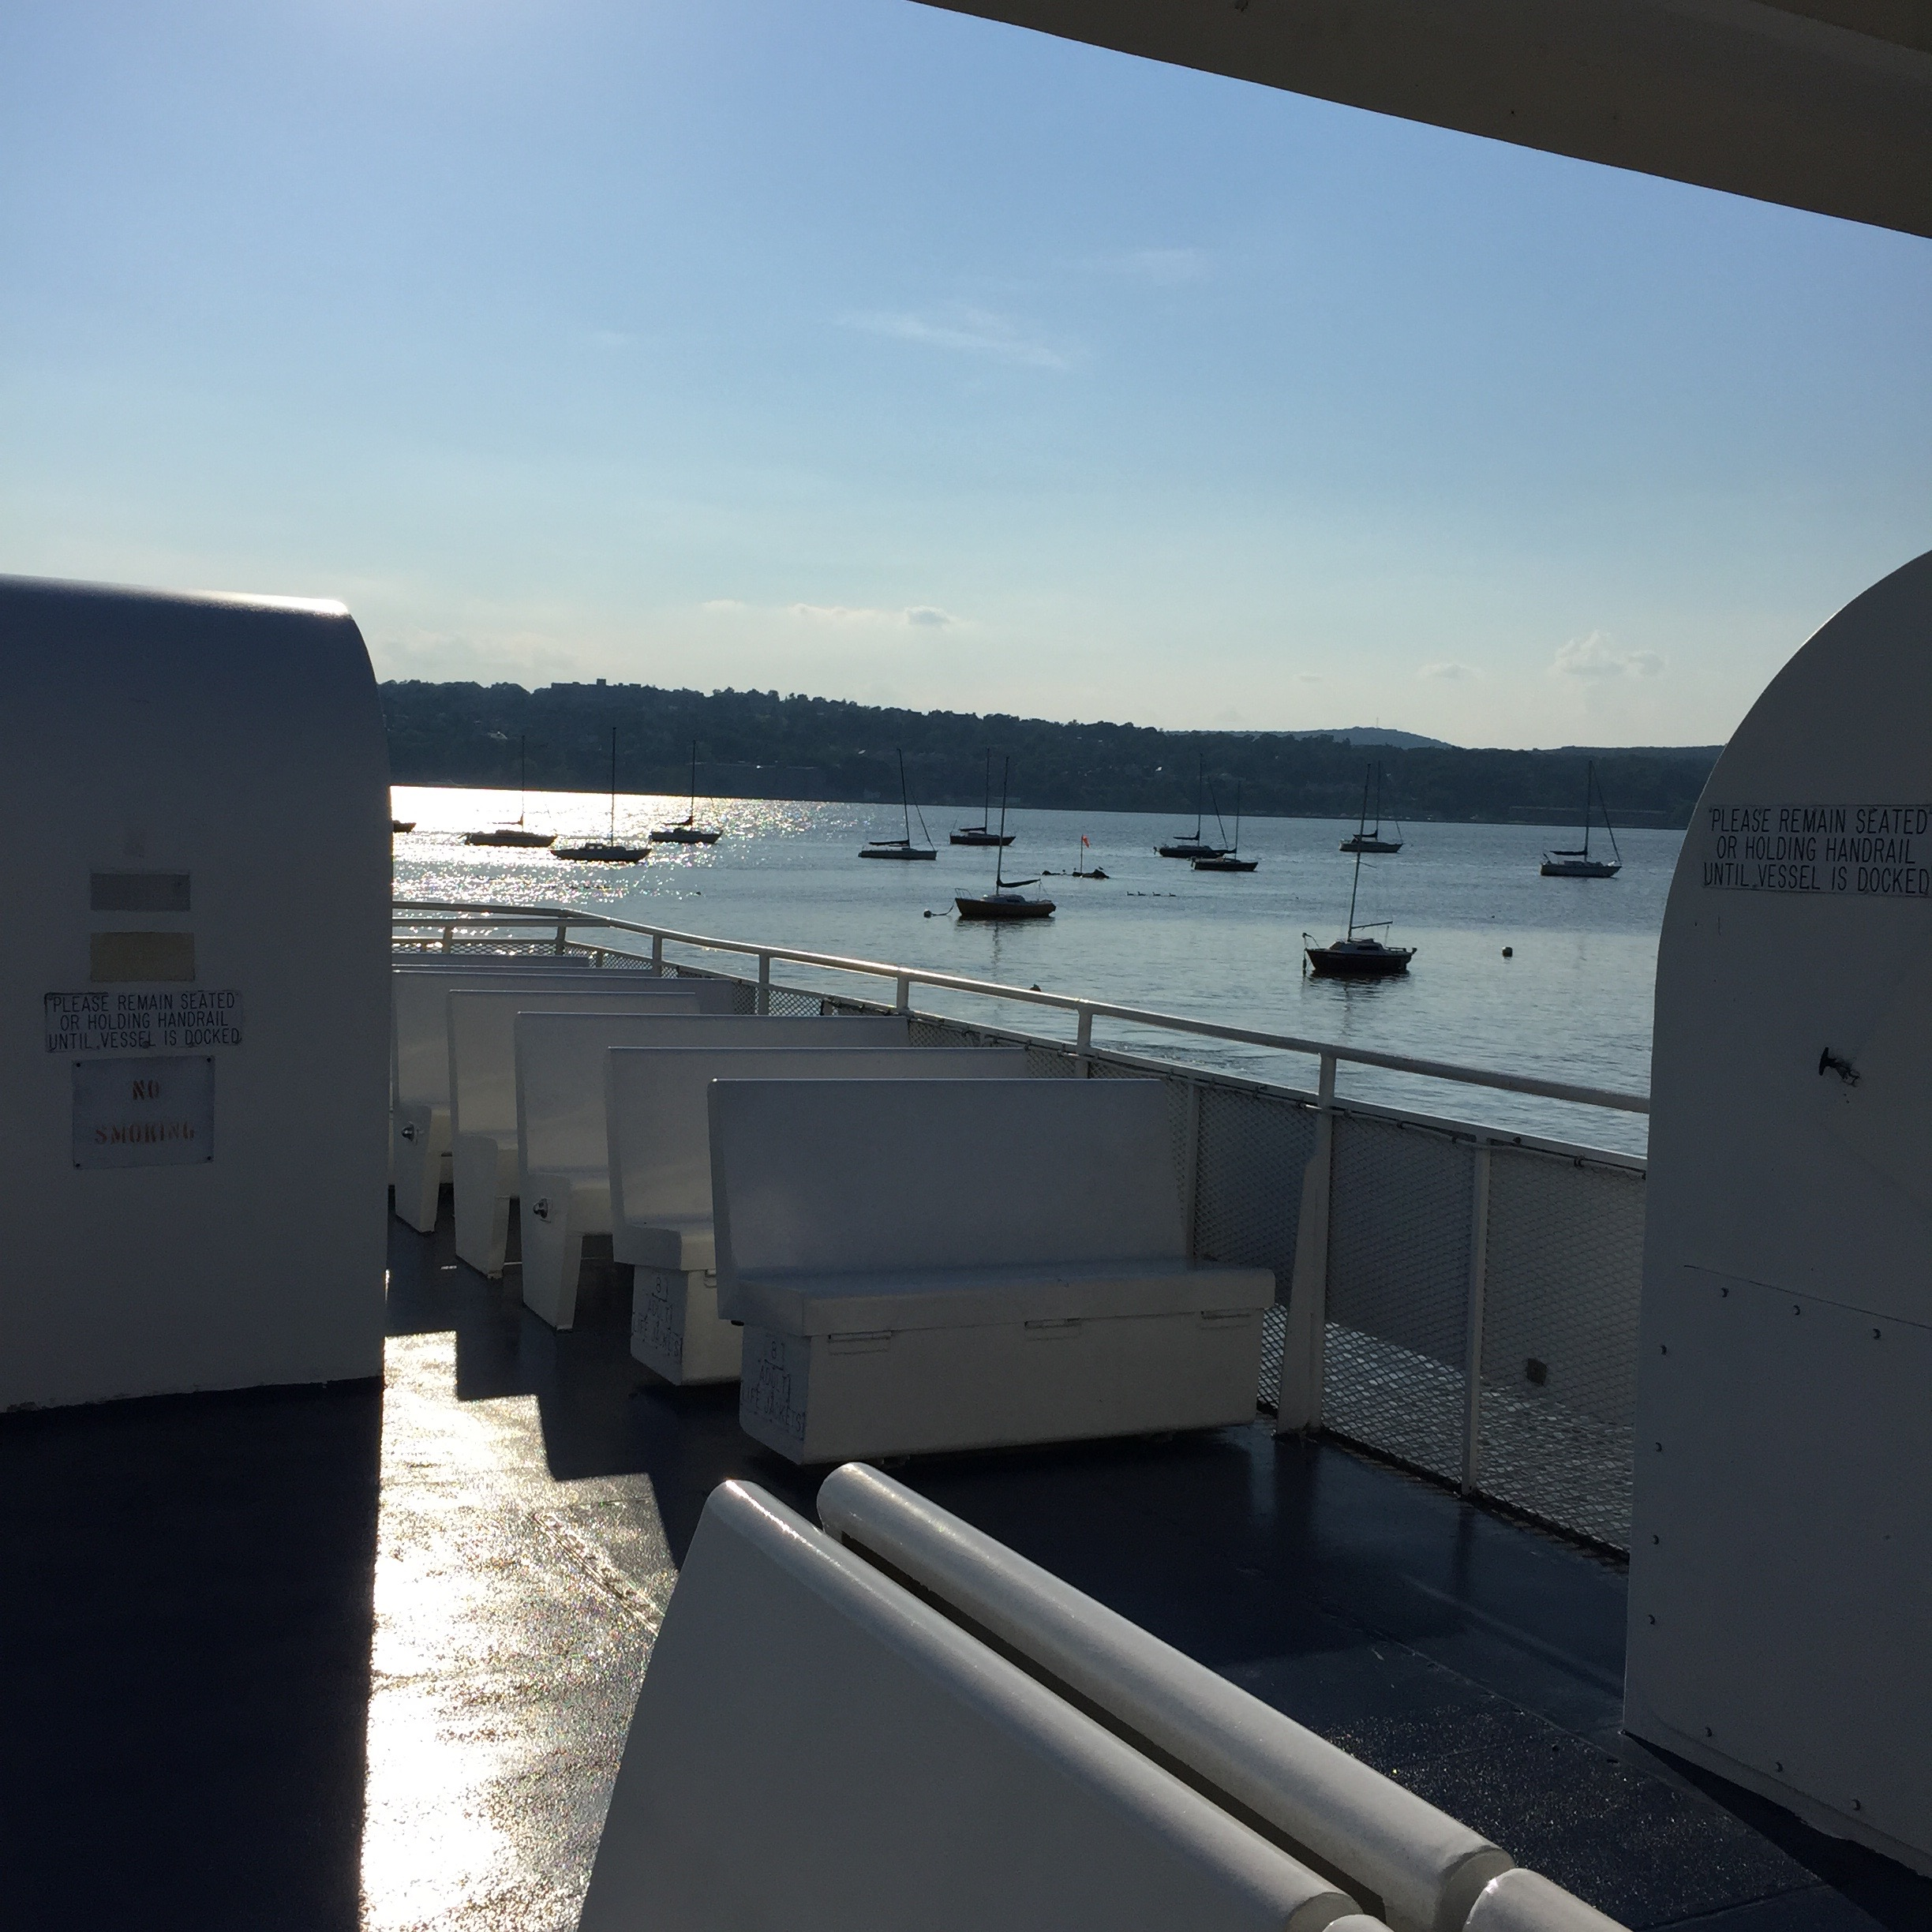 Any seat on the ferry has a view. The upper deck will get you unobstructed views of rolling hills and mountains. Photo Credit: Katie Hellmuth Martin